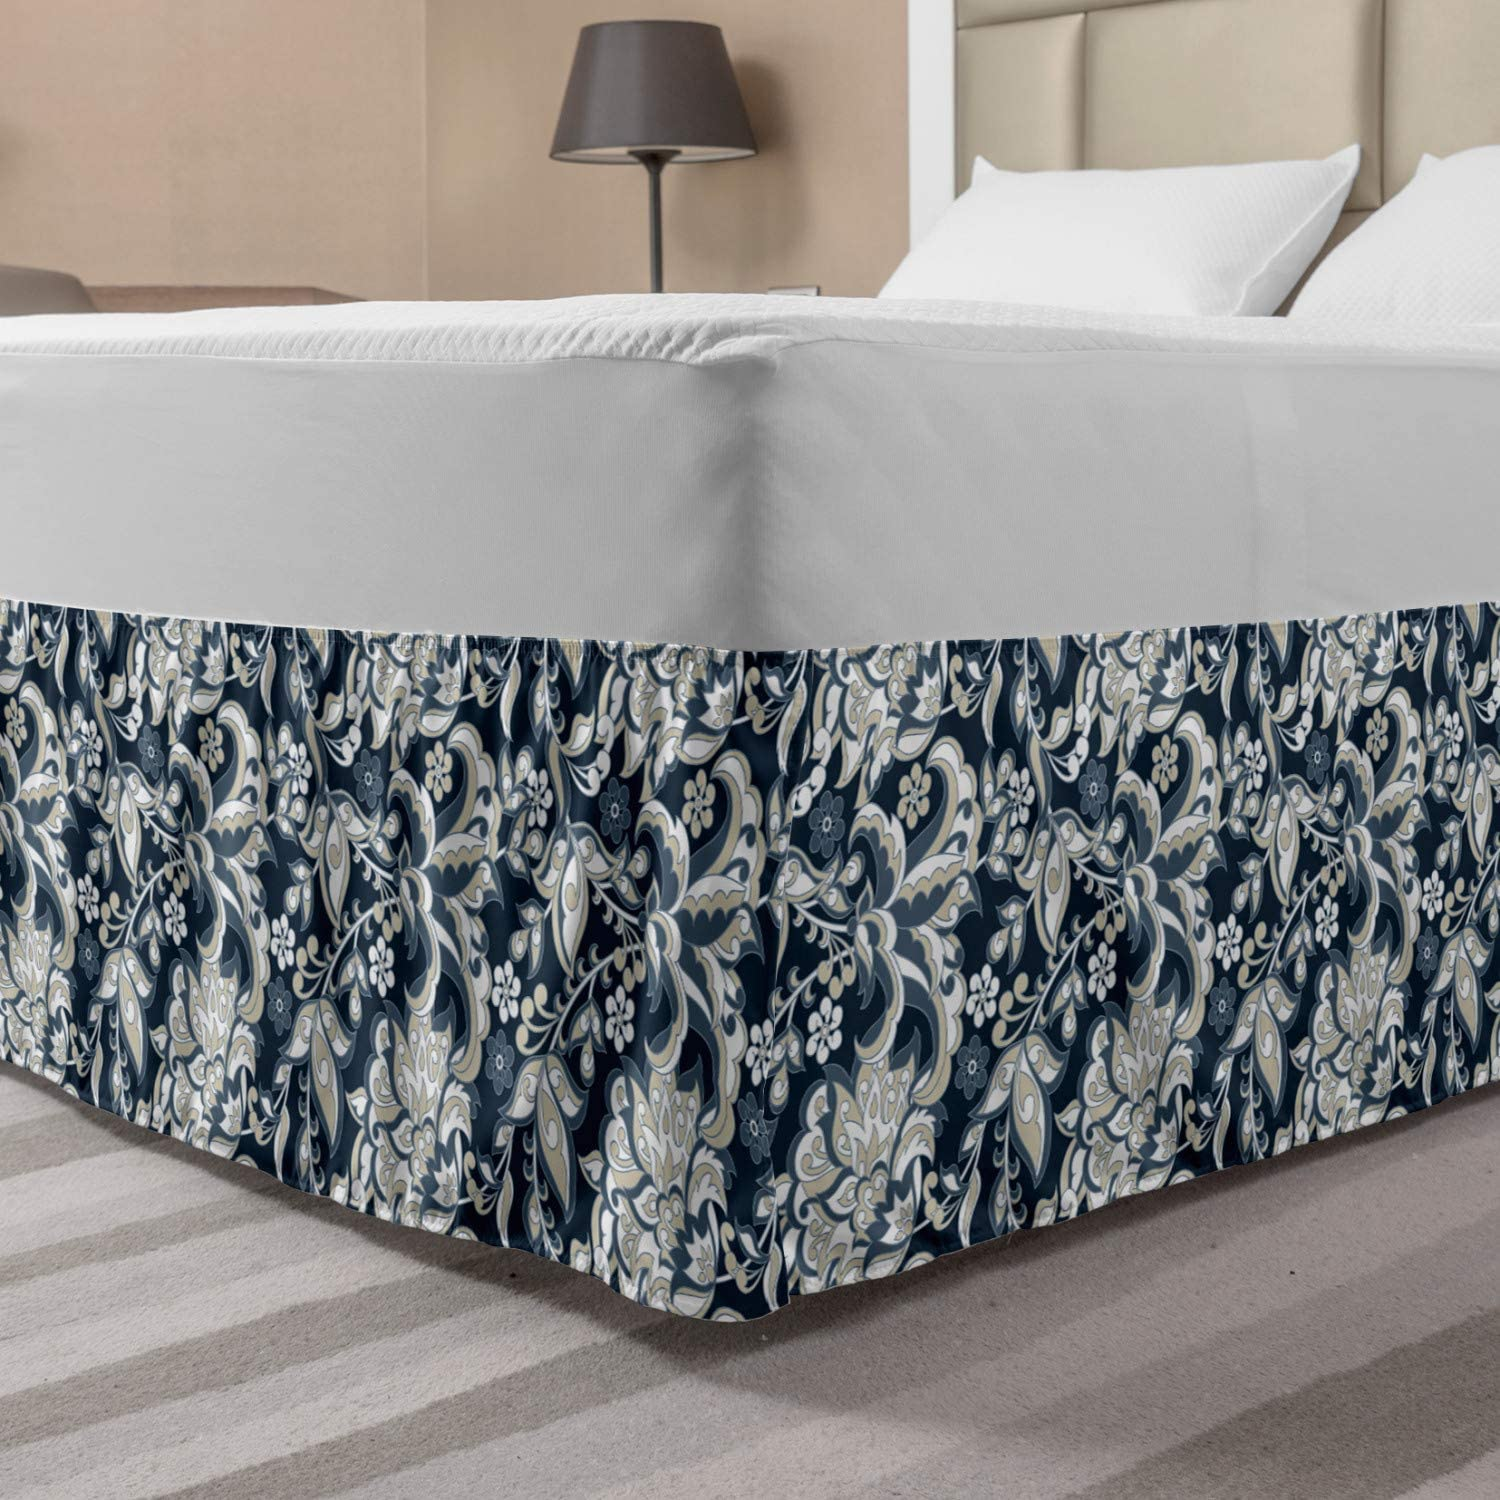 Ambesonne Asian Bedskirt, Floral Illustration Oriental Eastern Style with Traditional Influences, Bedroom Decor Wrap Around Elastic Bed Skirt Gathered Design, Queen, Pale Grey